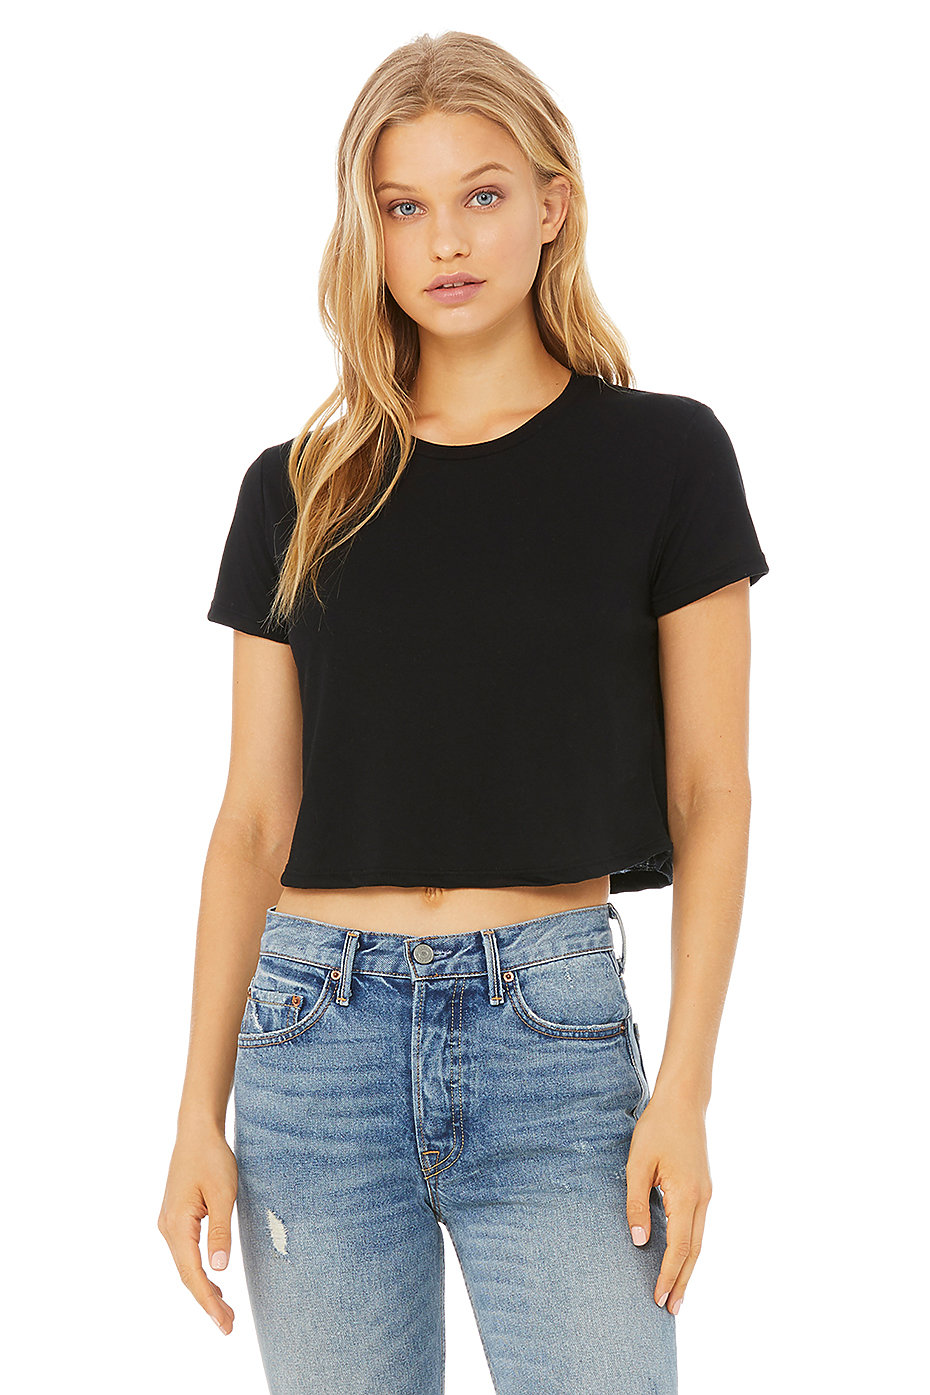 cc40f14a414 Womens Crop Tee | Wholesale Crop Top | Womens Wholesale Clothing ...